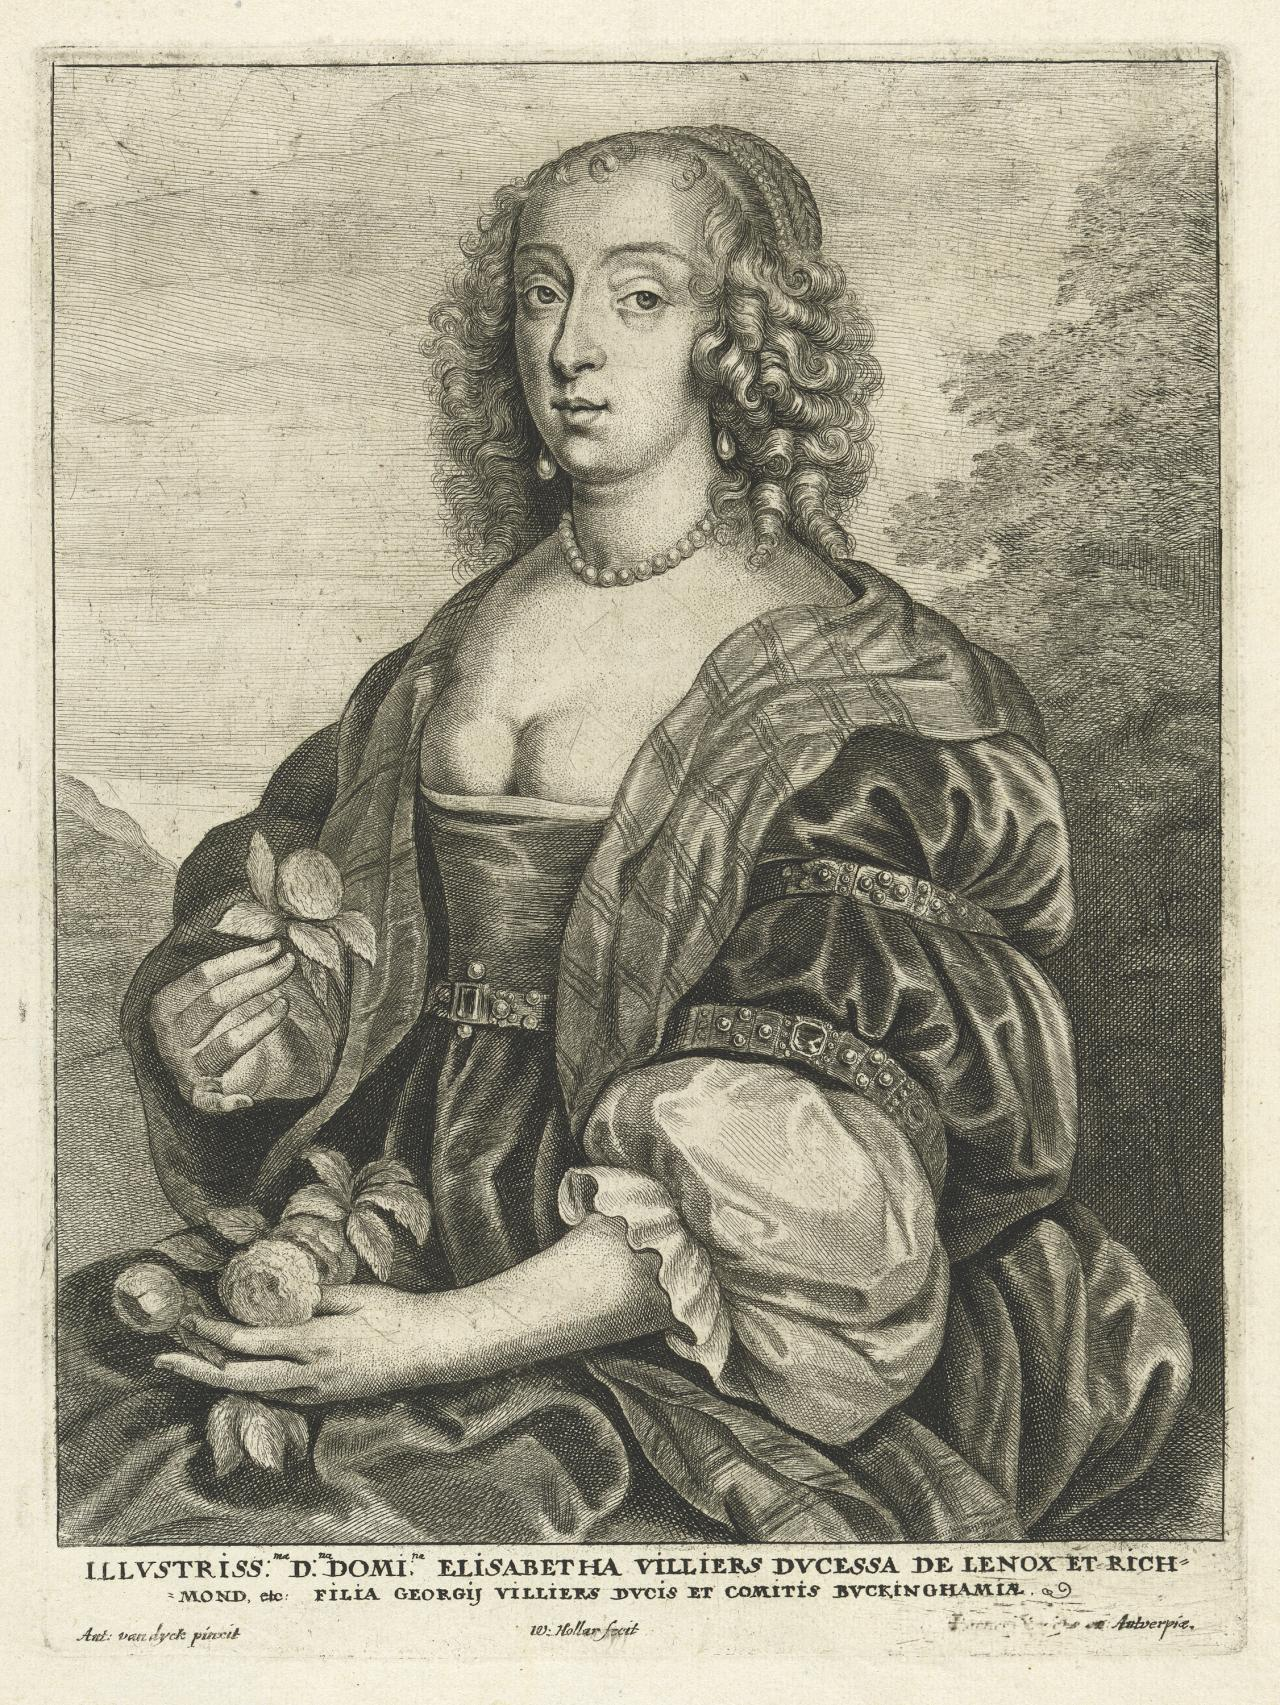 Elisabeth Villiers, Duchess of Lennox and Richmond